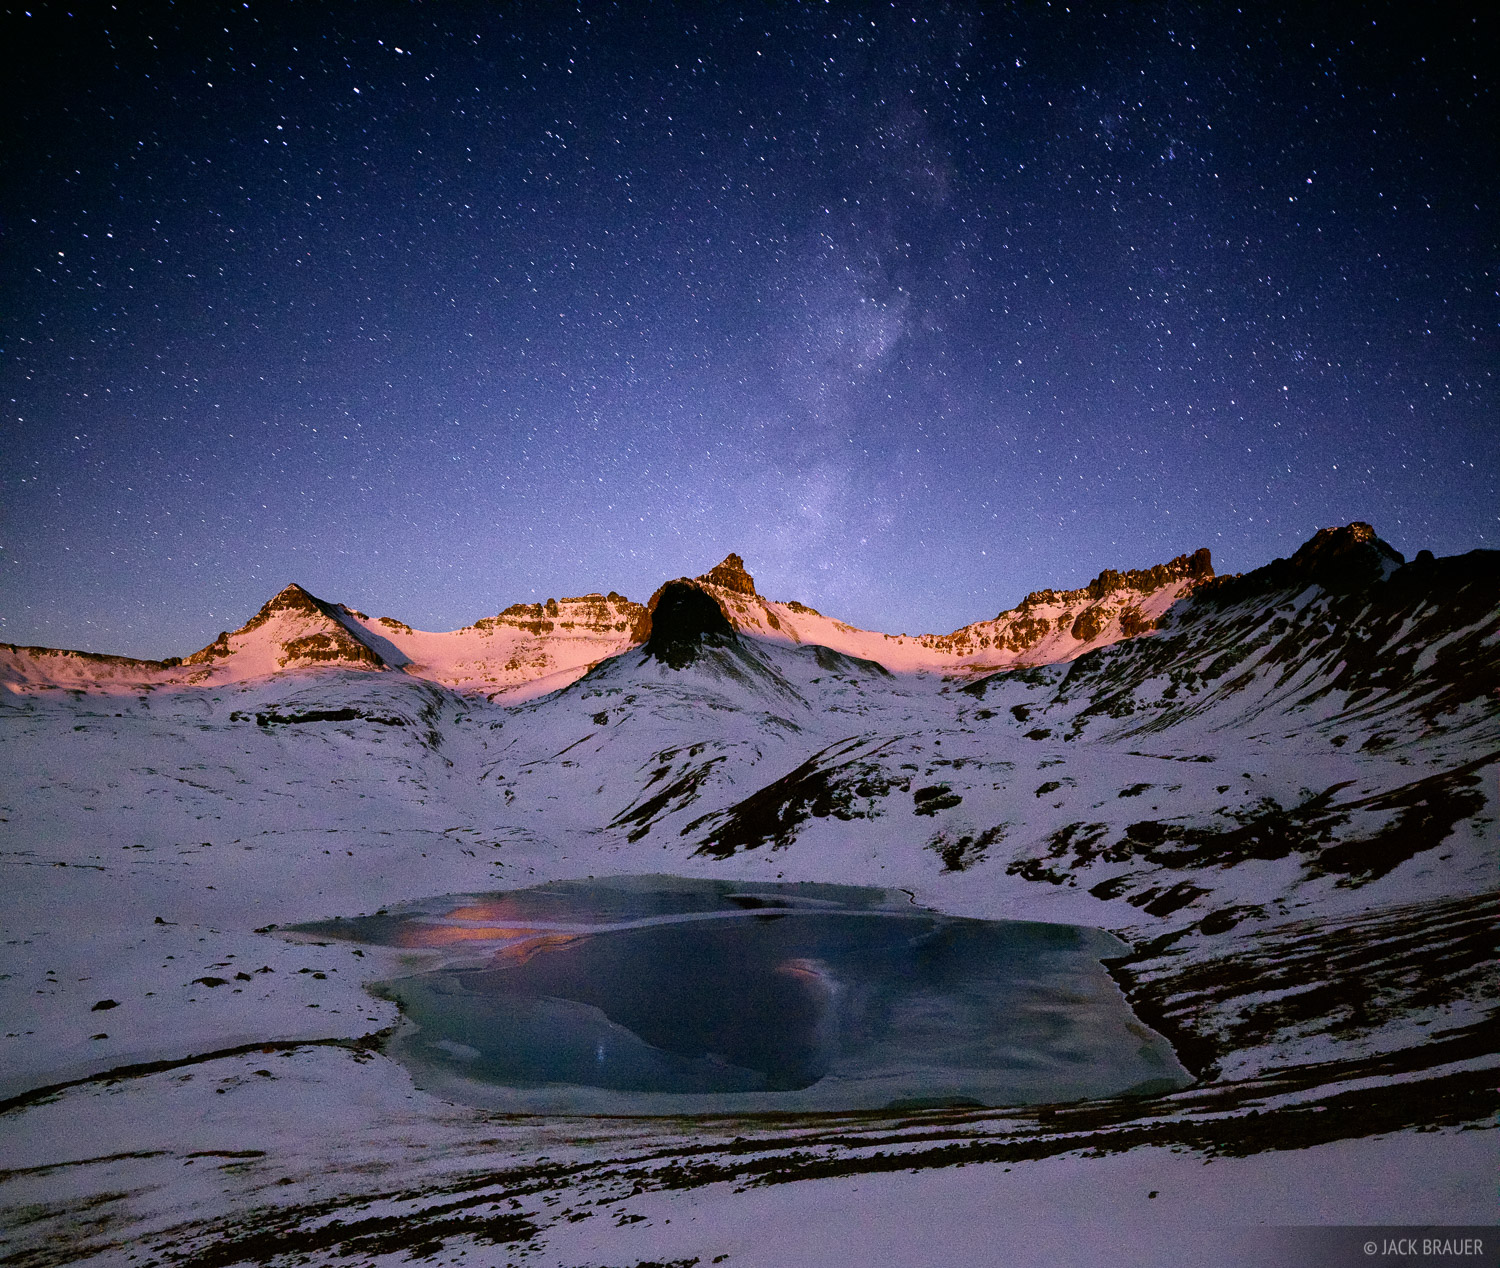 The rising moon casts lunar alpenglow on the peaks of Ice Lakes Basin in the San Juan Mountains of Colorado on this chilly November...